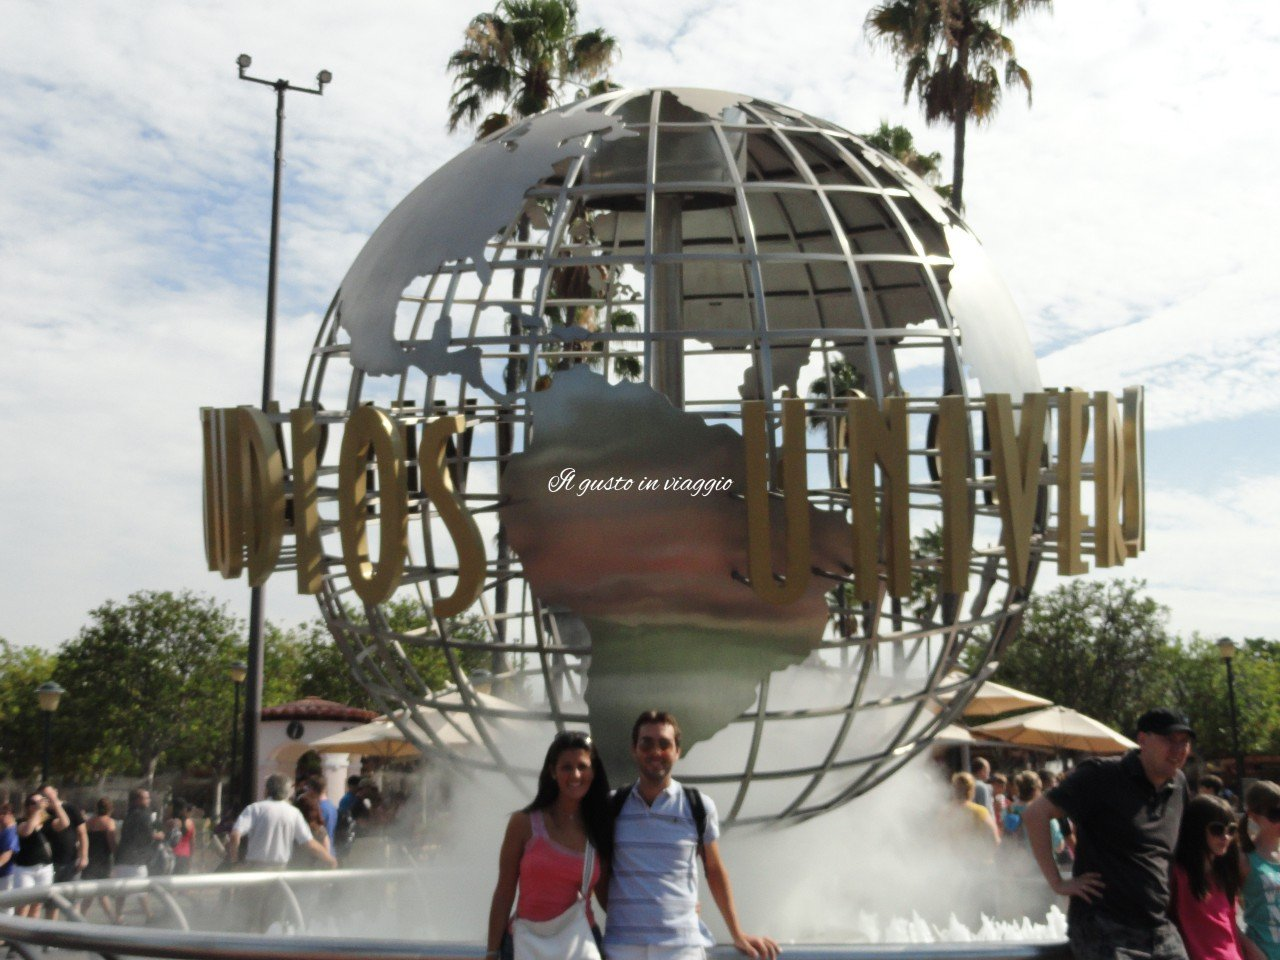 ingresso universal studios hollywood visitare gli universal studios mappamondo universal studios hollywood los angeles